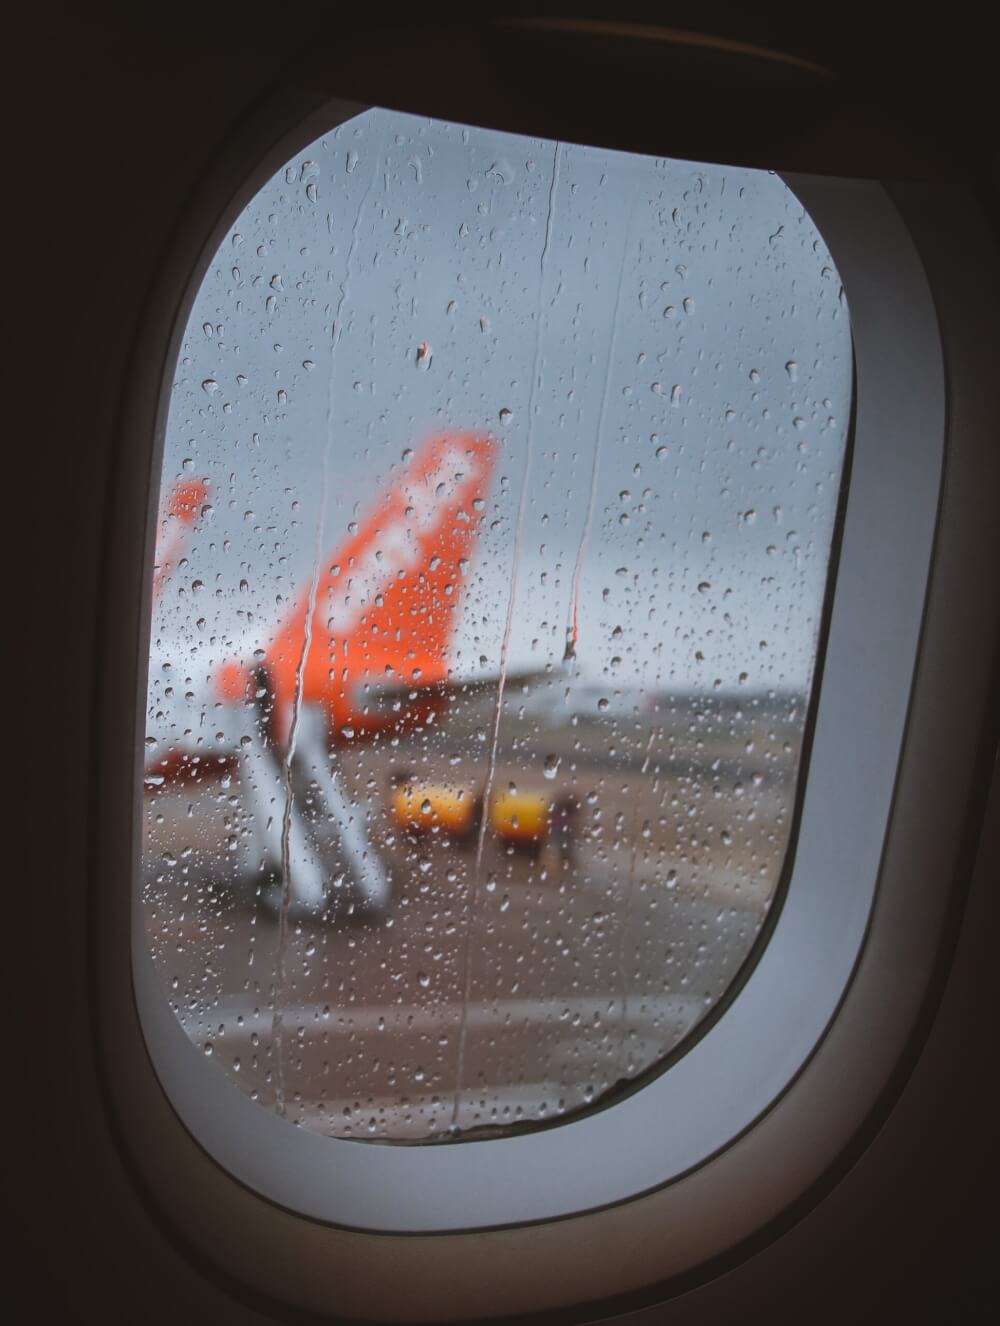 Rainy plane window looking out onto another plane